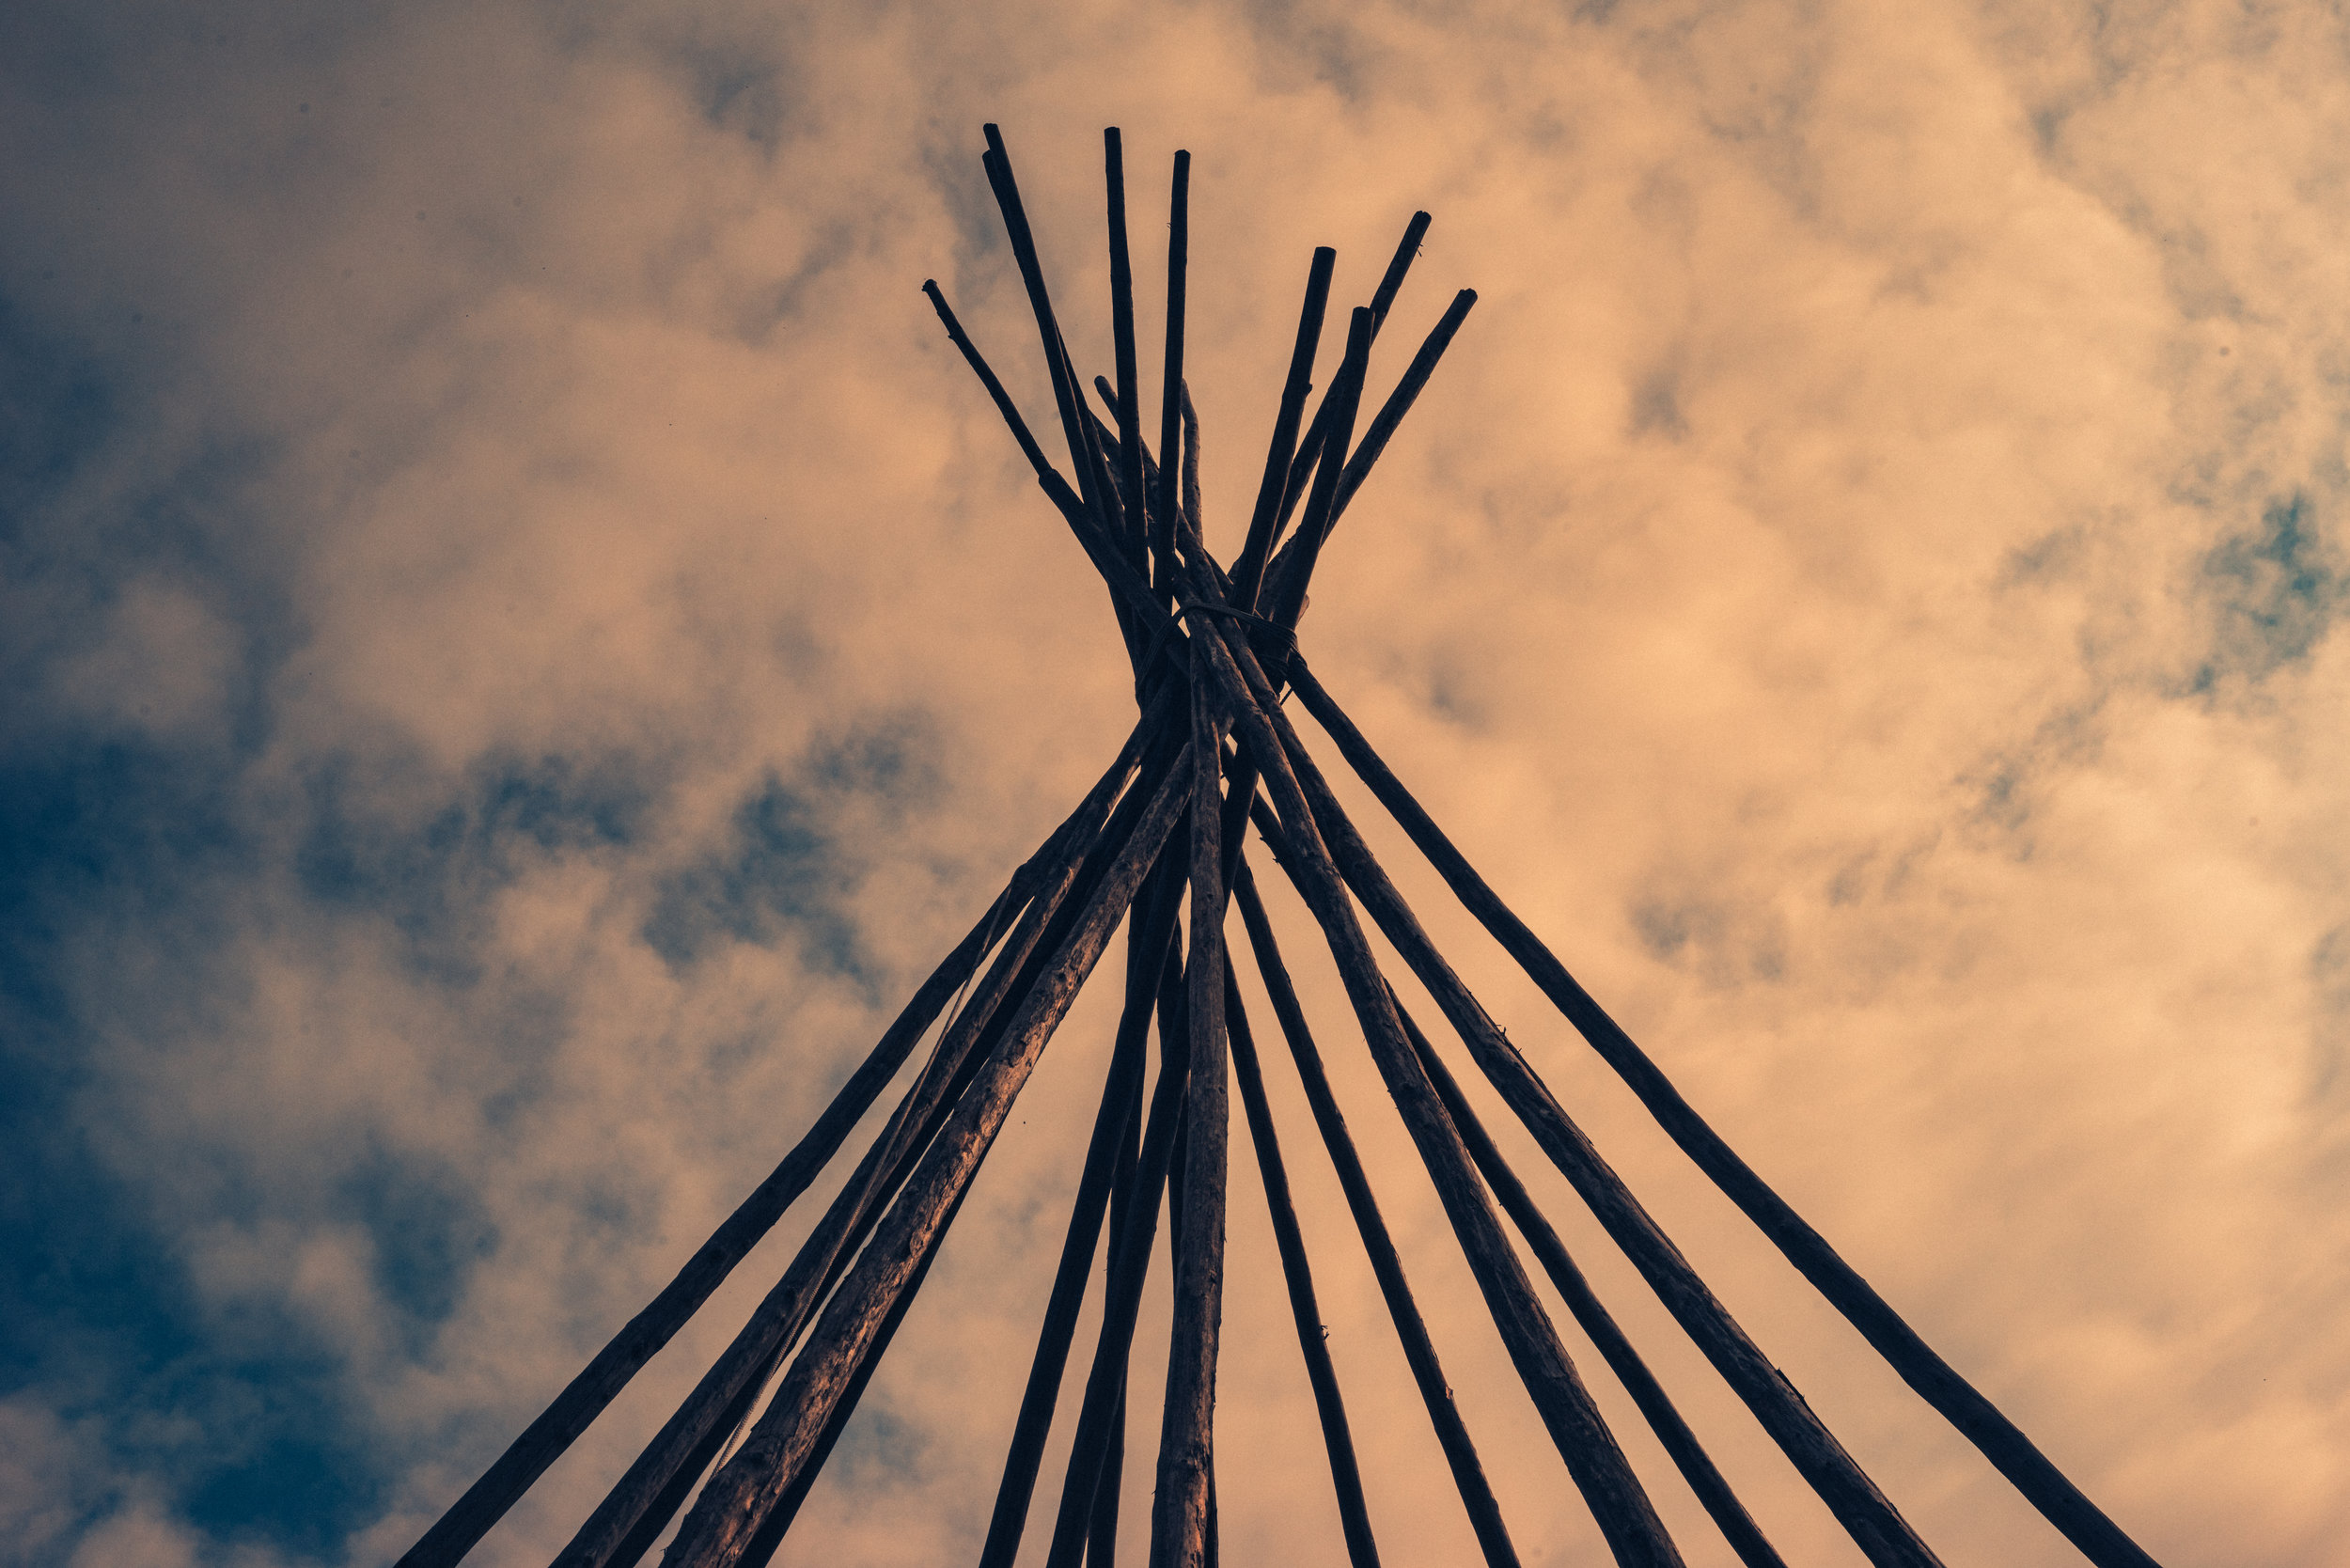 Open Tipi Sacred Space - The Astral Tipi is a space for people to come together and honor each others being in this world. Every evening, when in need for inner quiet, the tipi is there for us. This space is meant for all and to be shared with gratitude and respect.